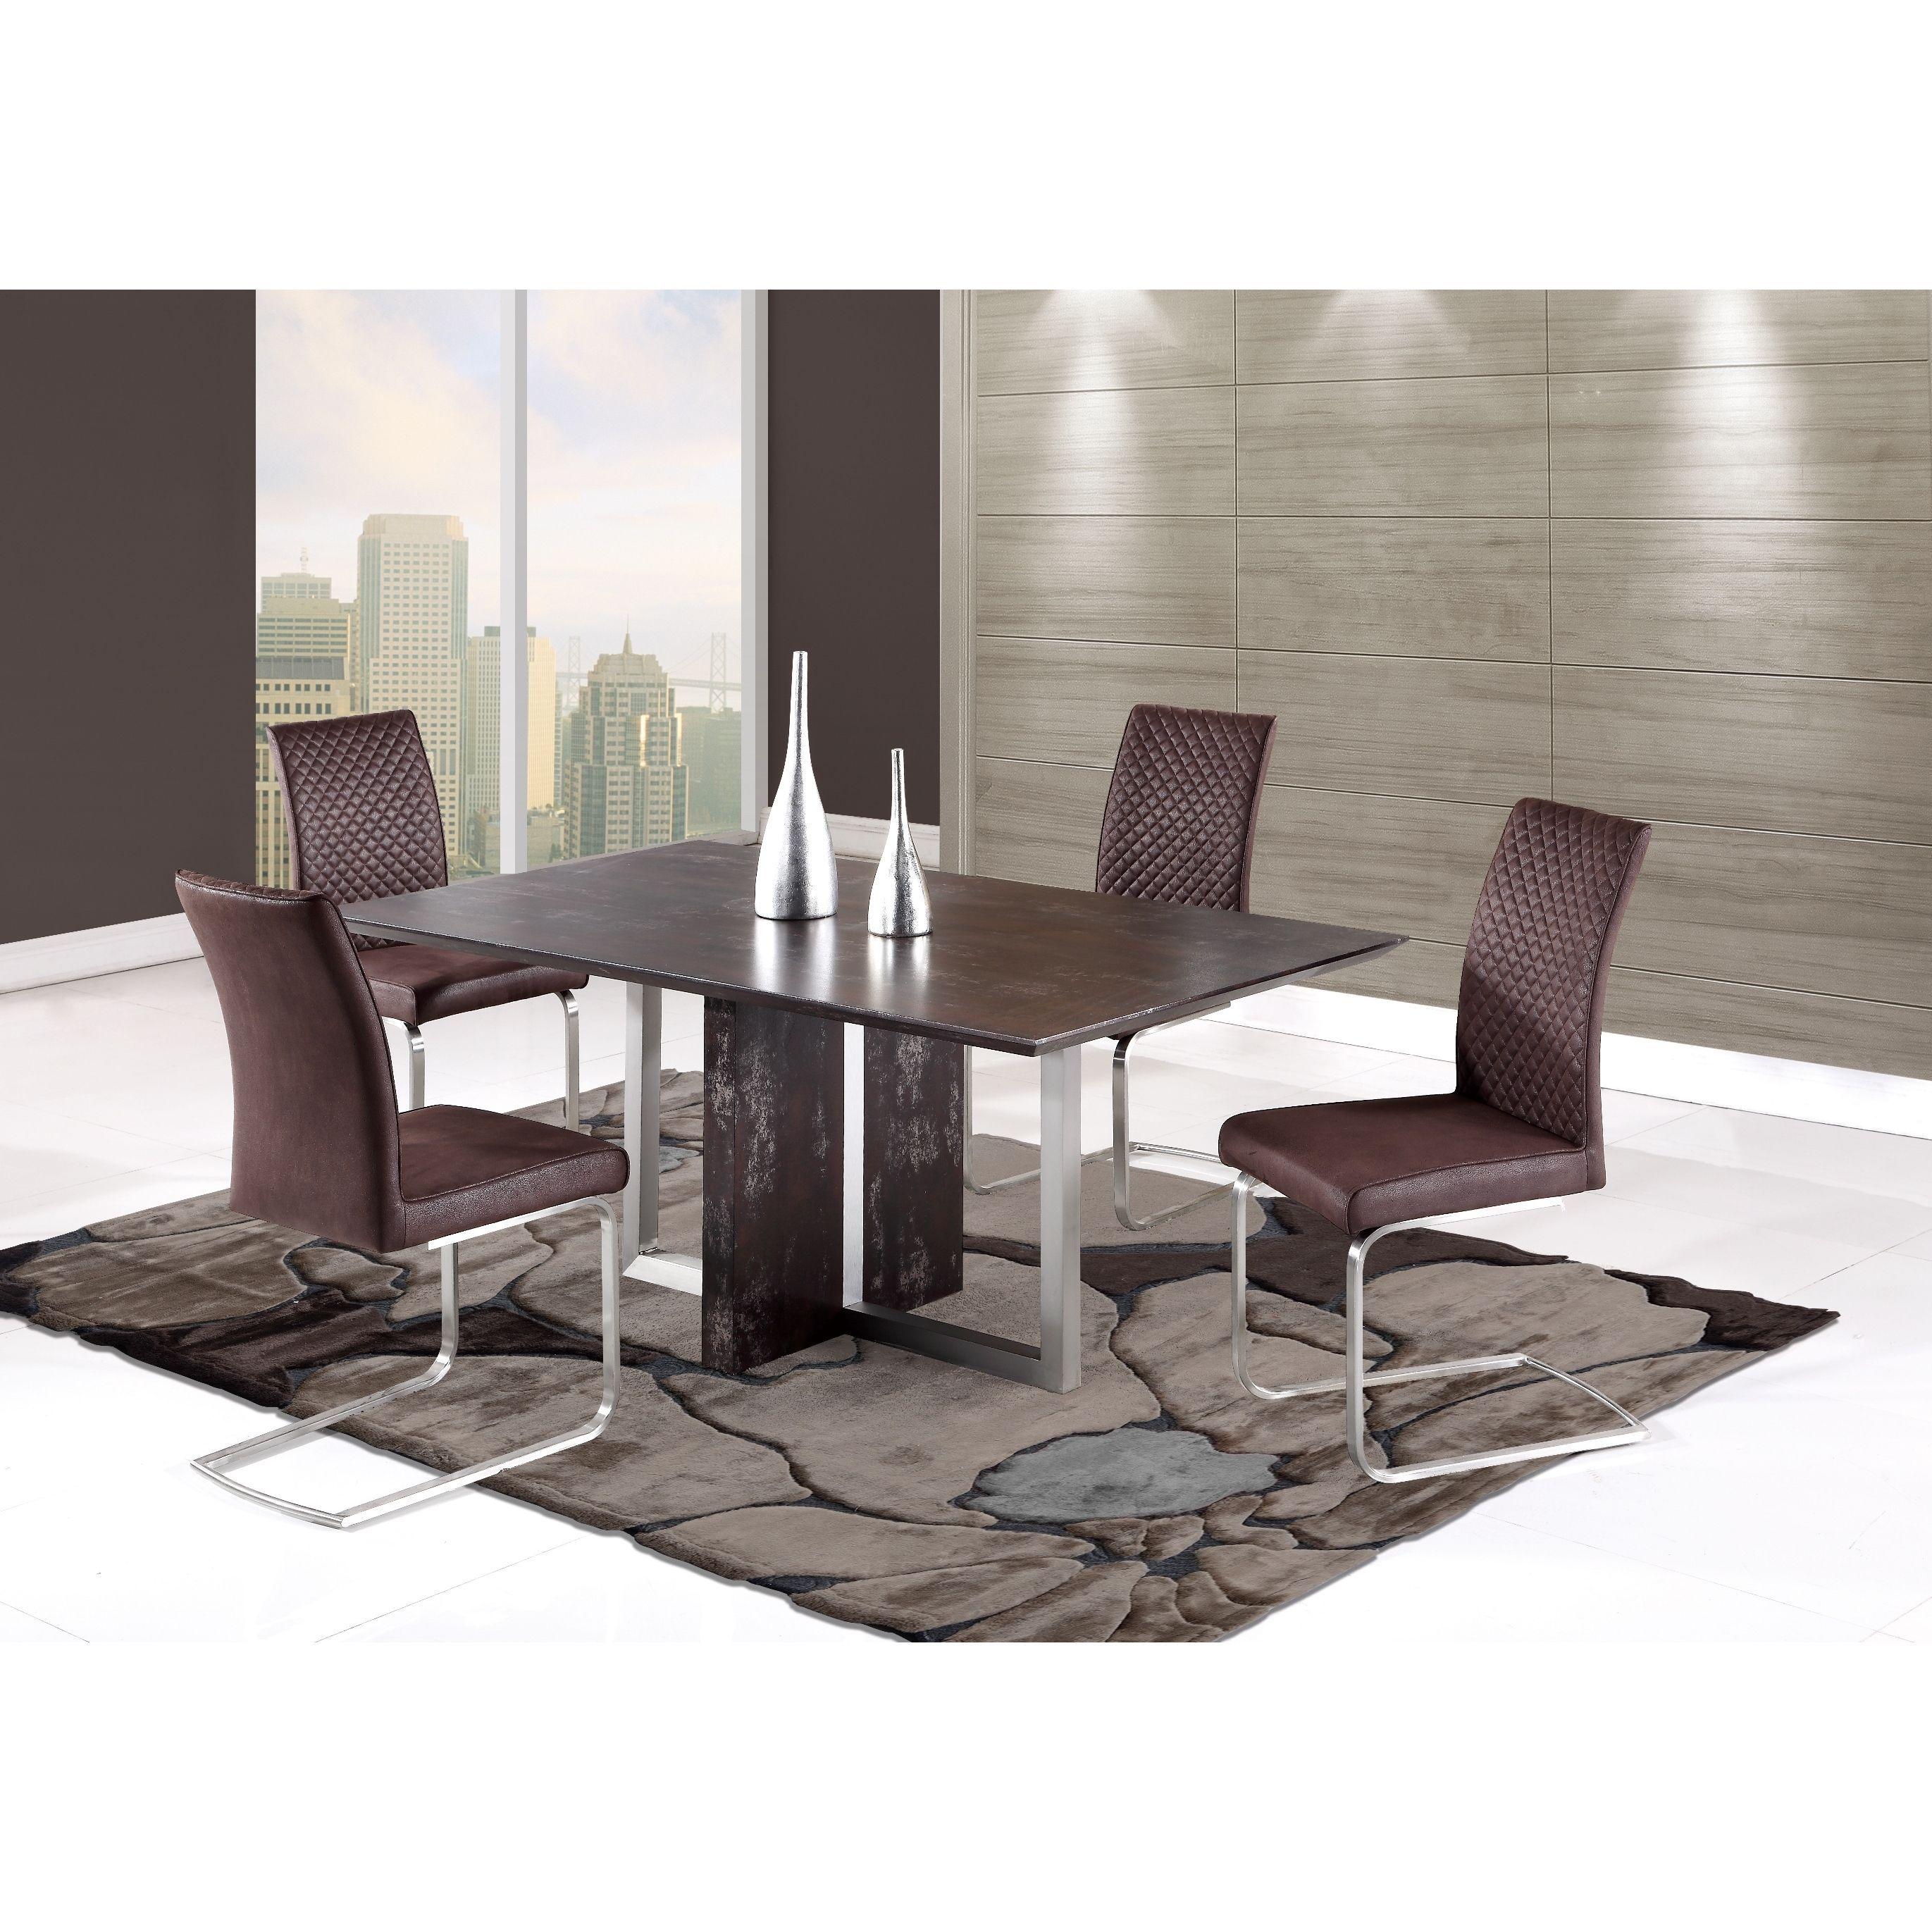 Global furniture antiqued dining table dining table antique d